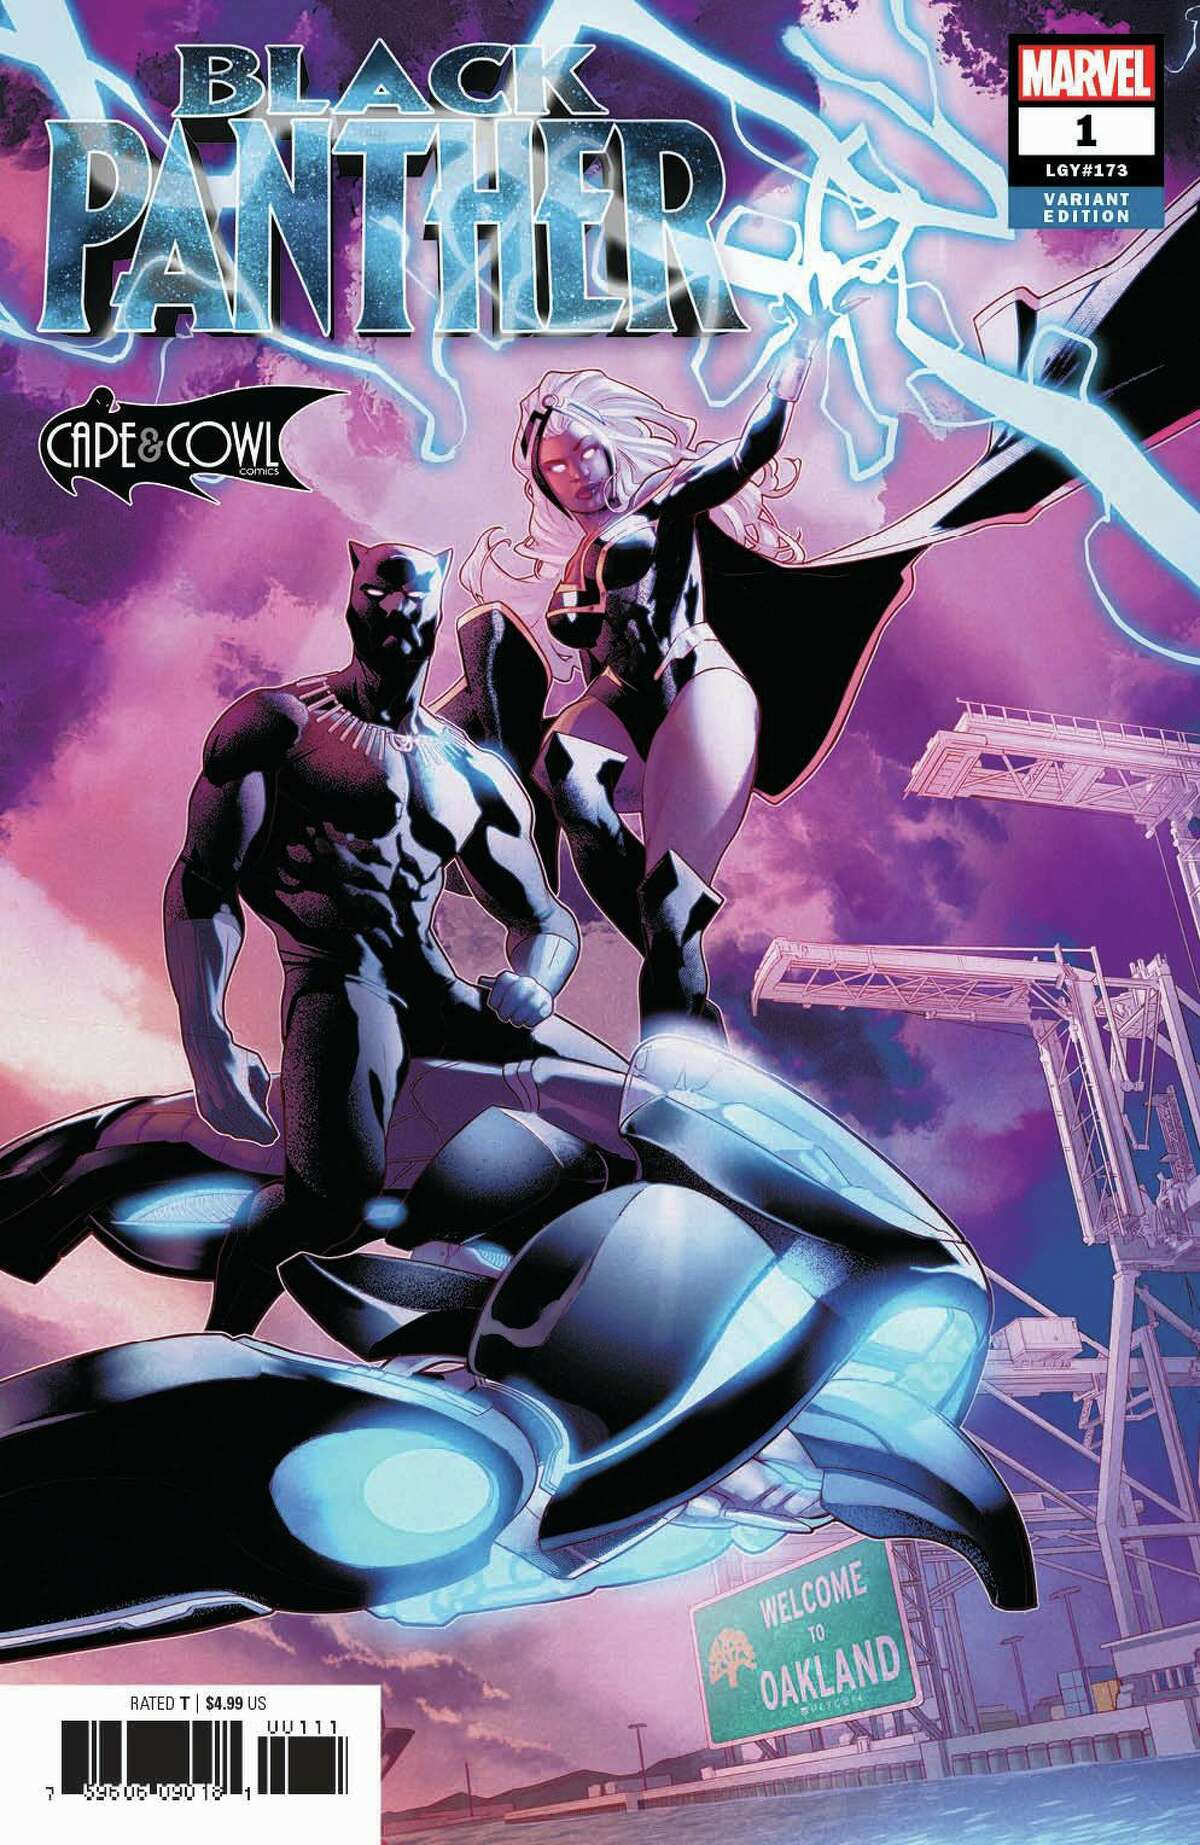 Oakland comic shop Cape & Cowl unveiled its exclusive variant of Marvel's Black Panther #1, written by Ta-Nehisi Coates and with art byDaniel Acuna.